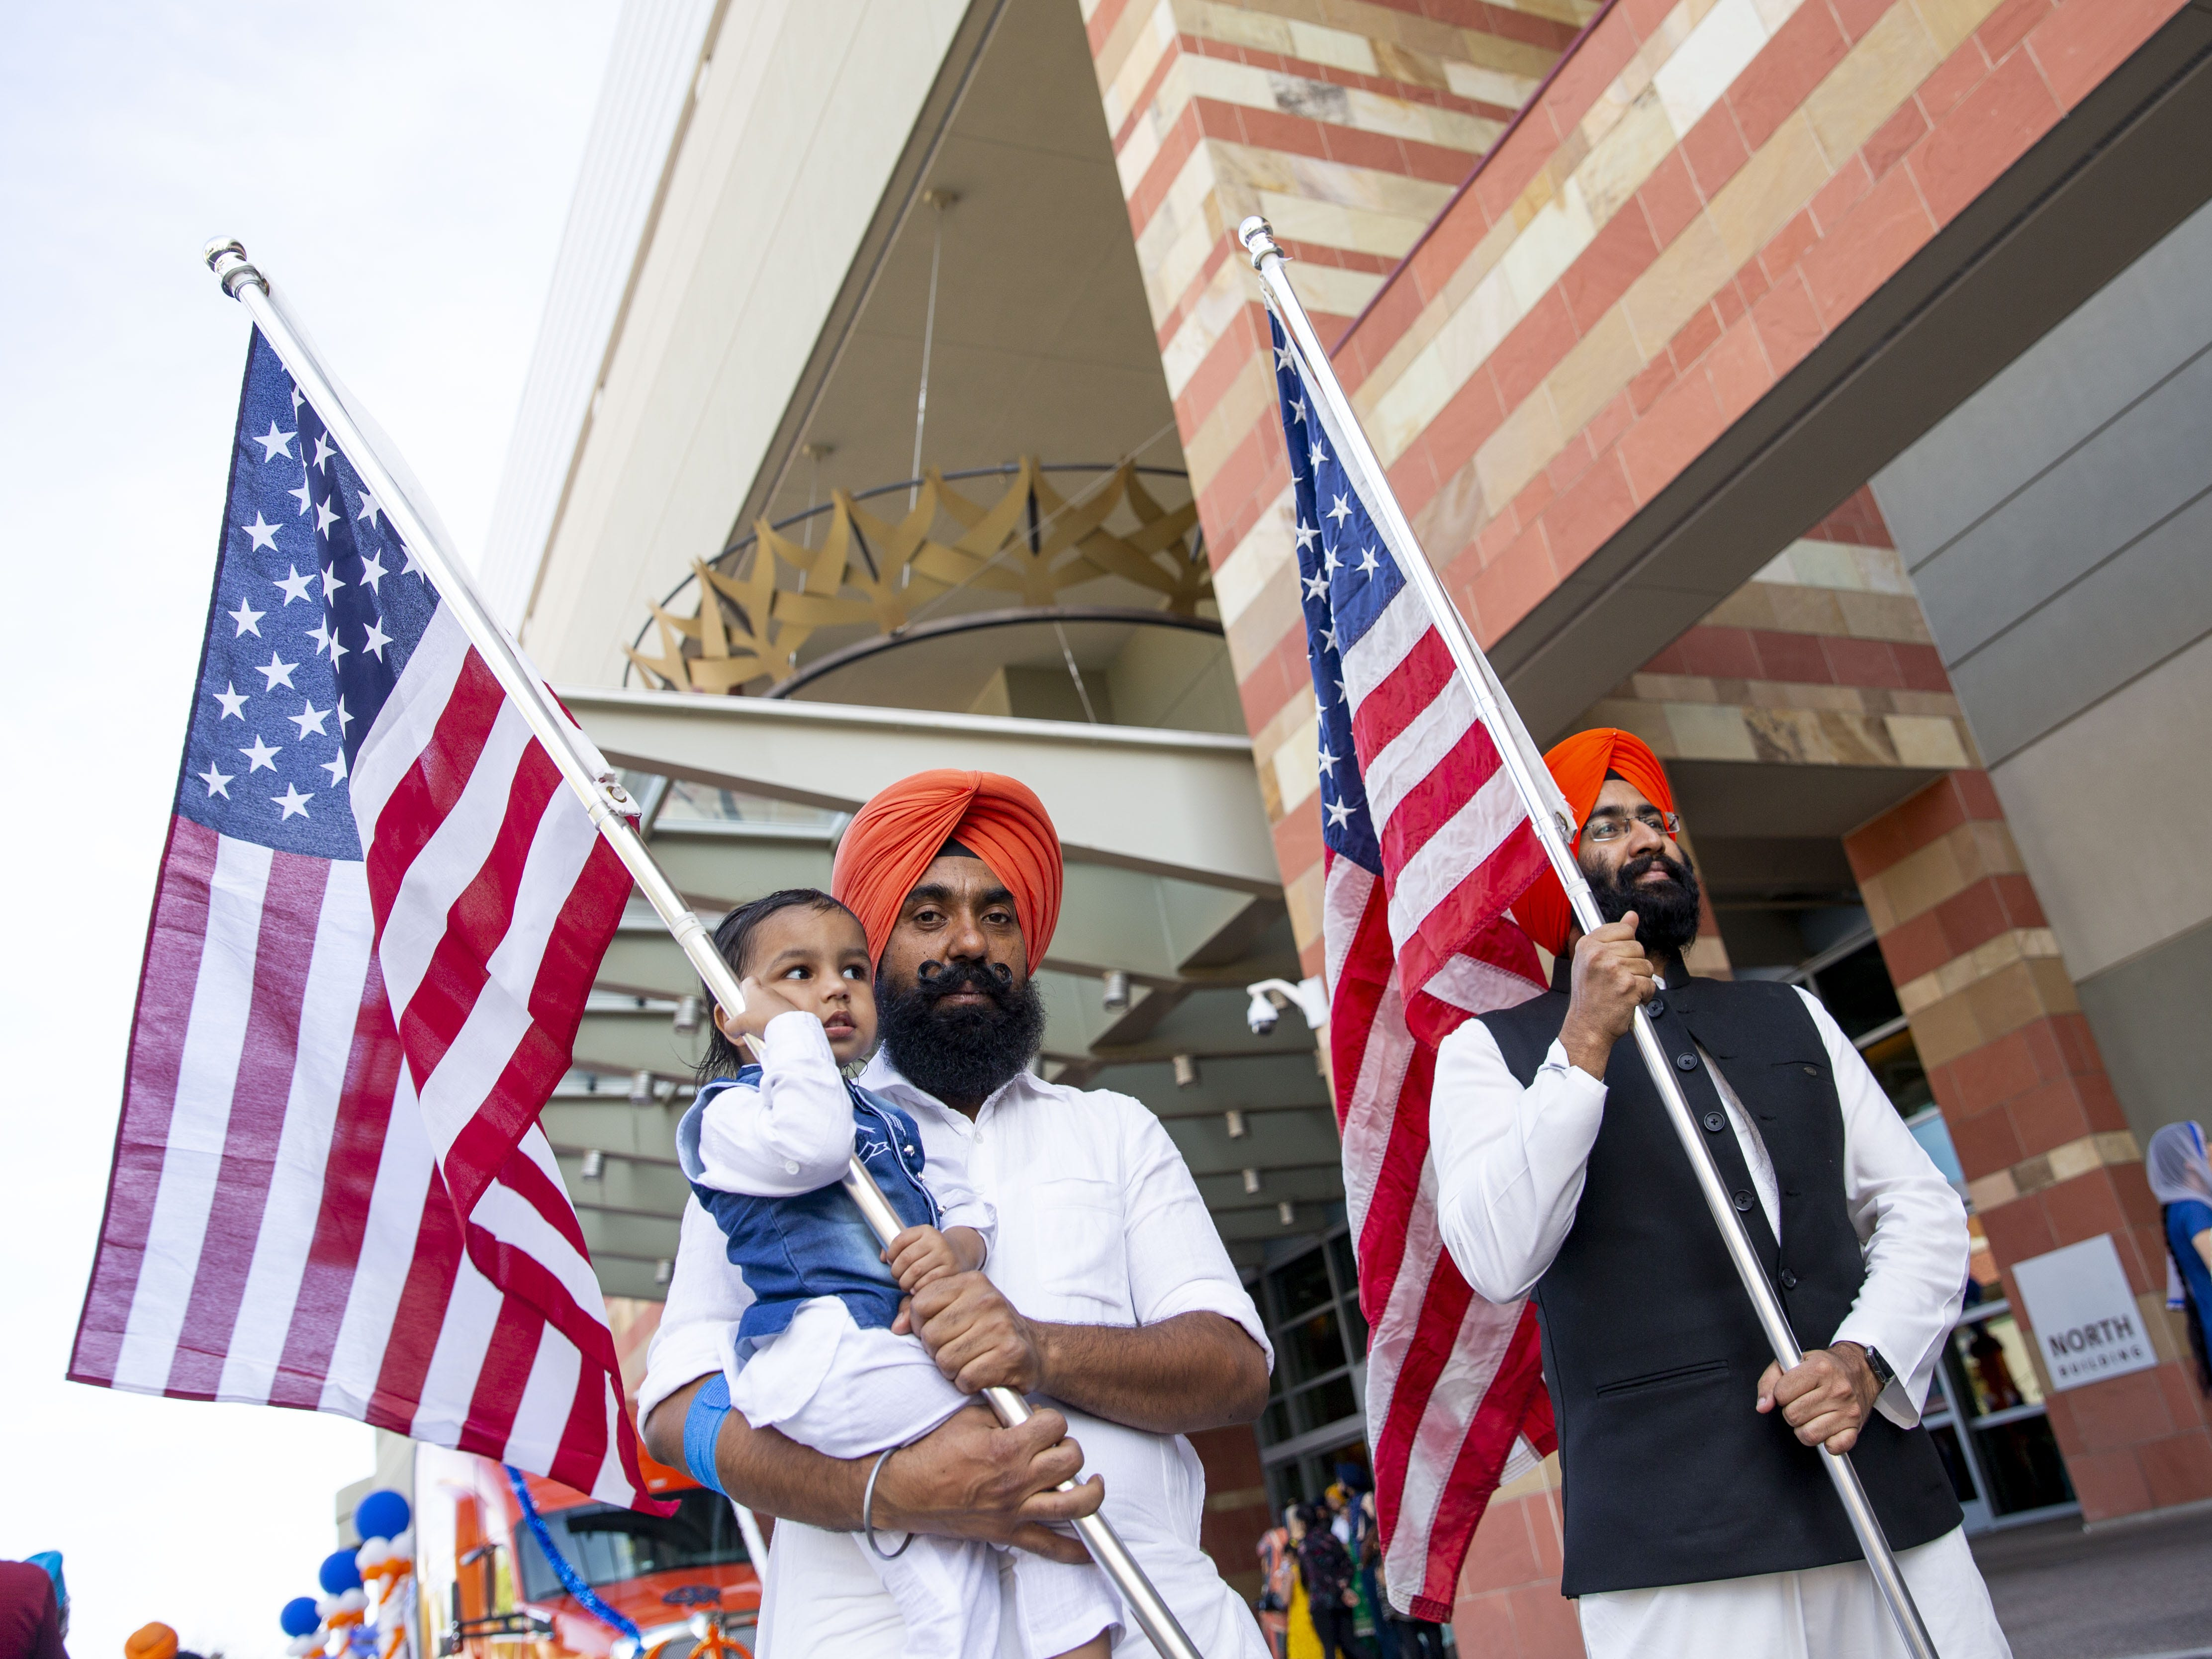 From left, Amtej Singh, 2, his father Satnam Singh, and Manmeet Singh pose with American flags before the Sikh parade begins in Phoenix on March 24, 2019.